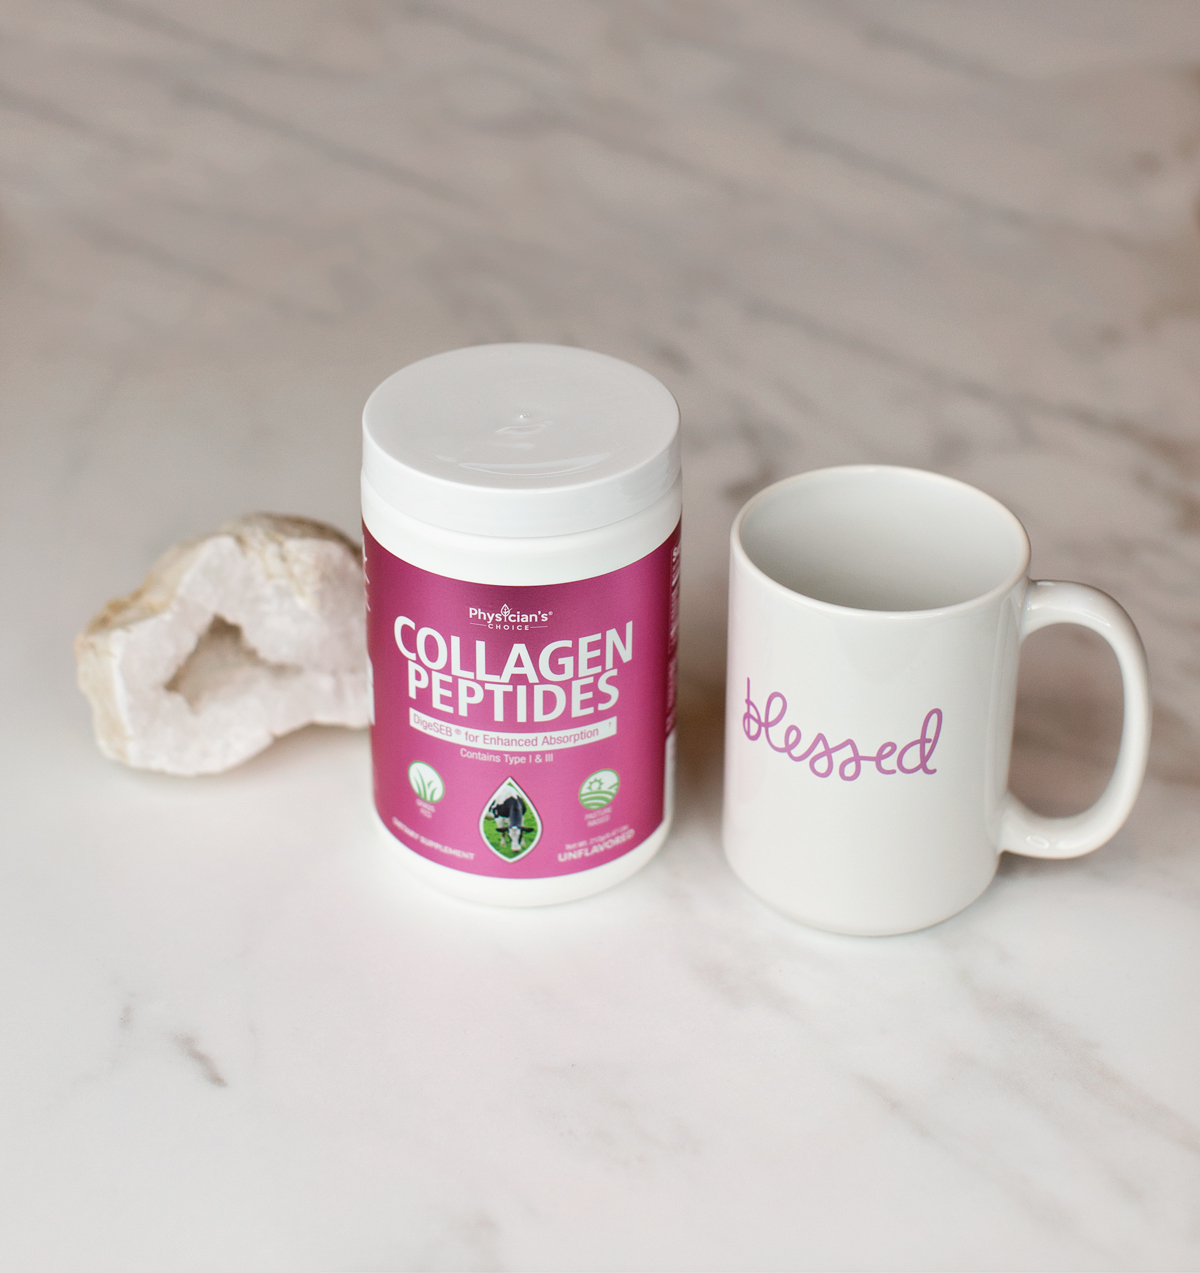 collagen powder and coffee mug on white marble background